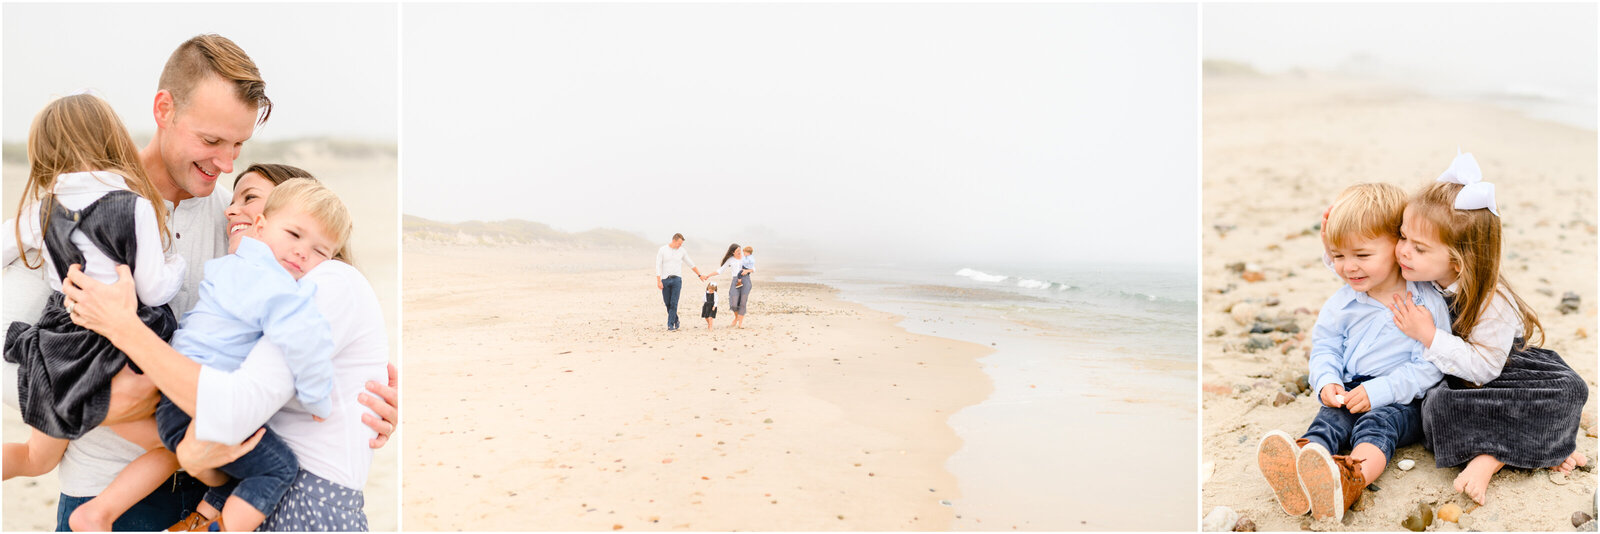 Massachusetts beach family portraits